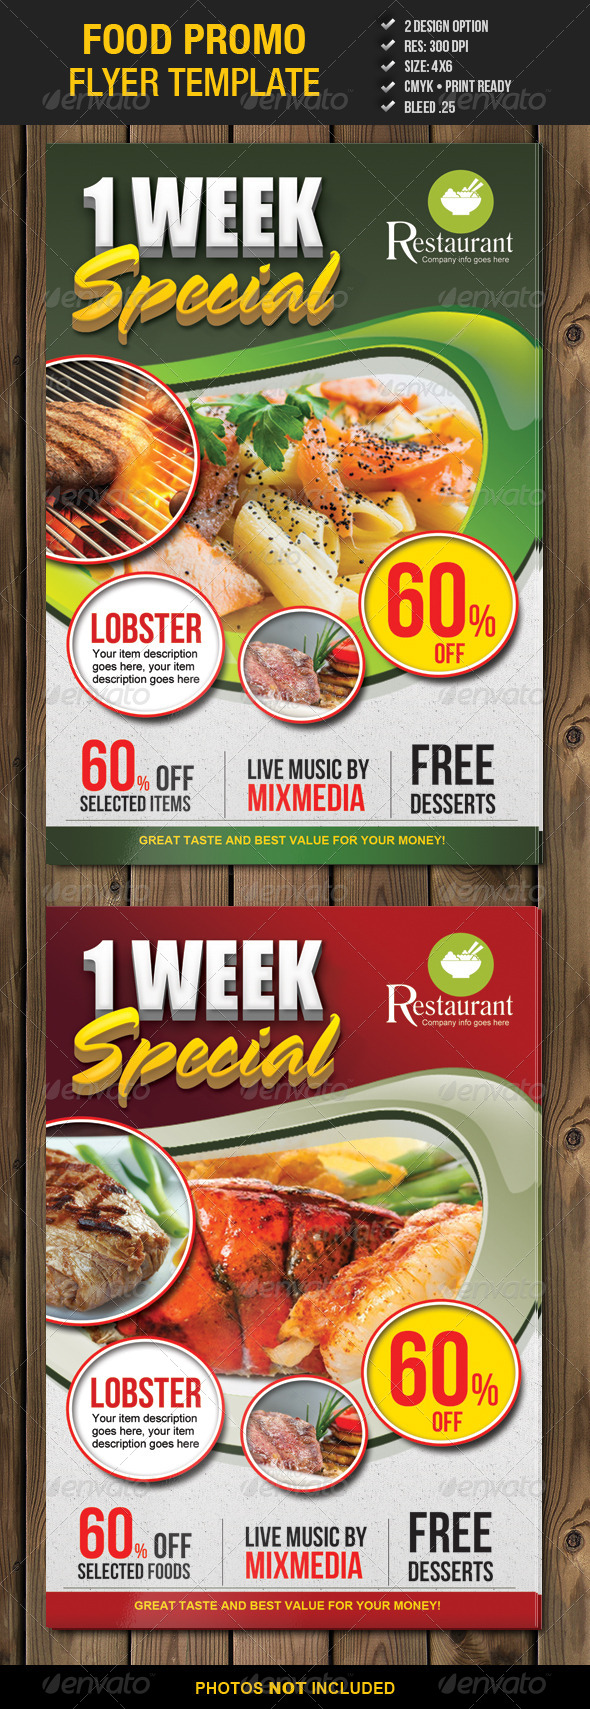 Food Promo Flyer Template 2